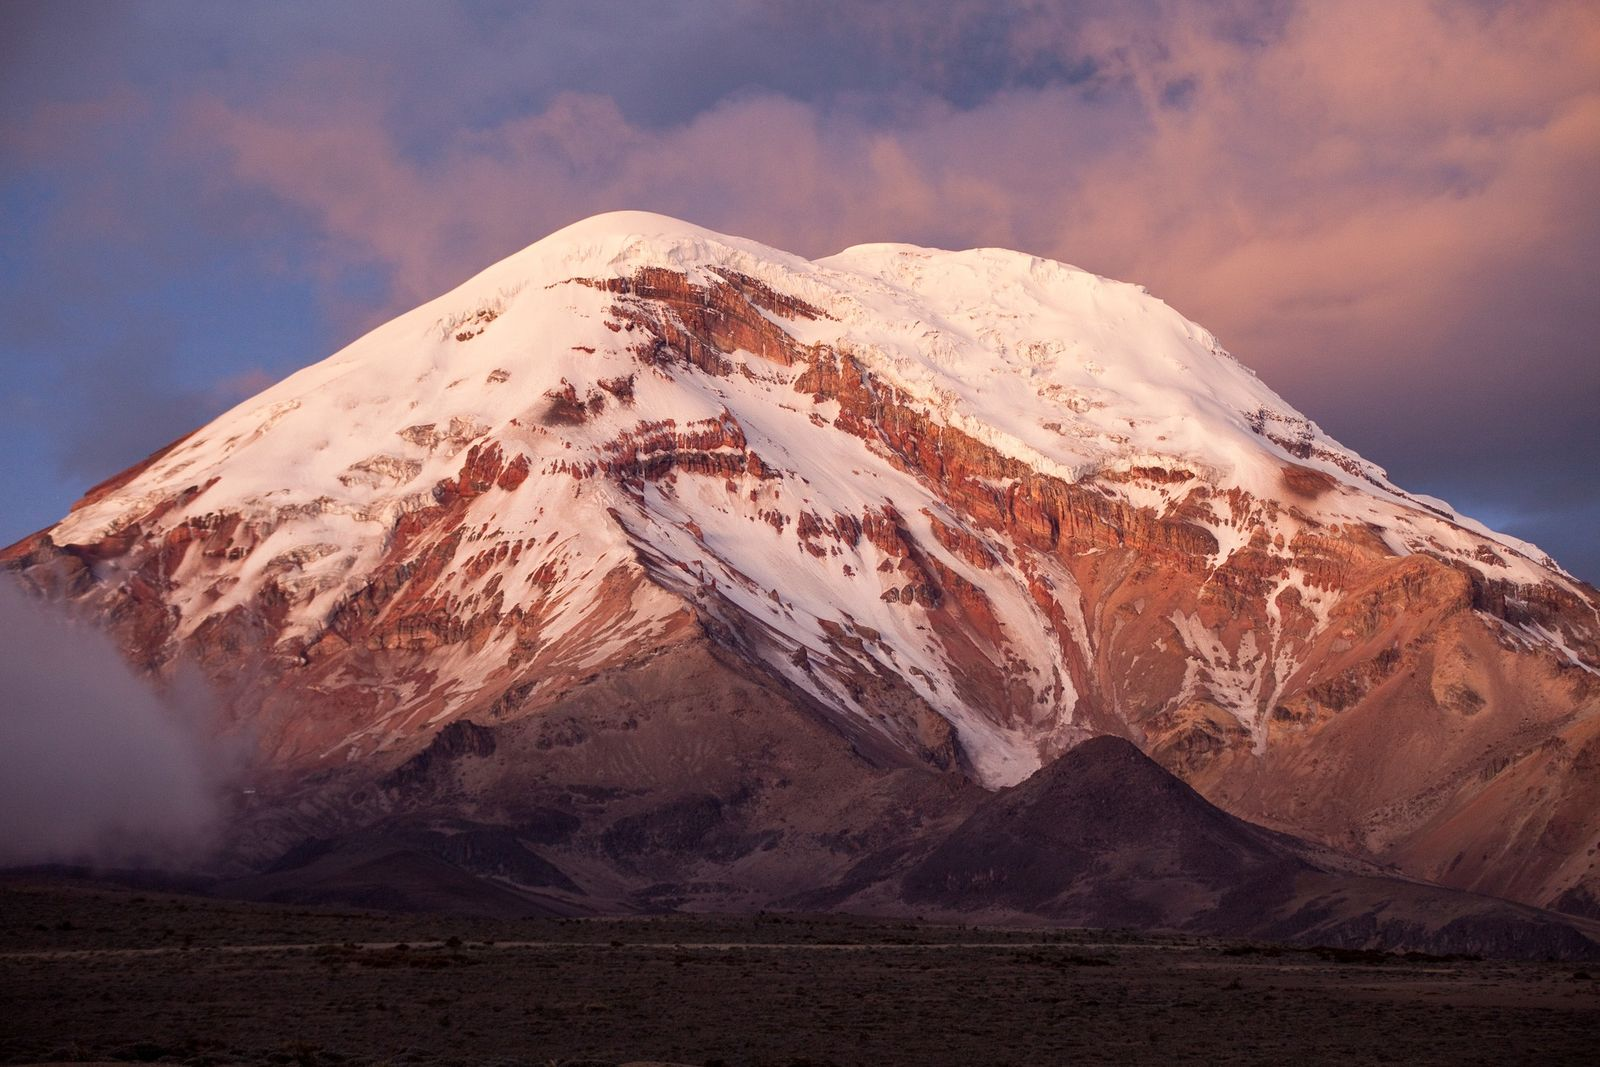 Chimborazo, a dormant volcano located in the Andes, is the highest mountain in Ecuador at 20,561 ...